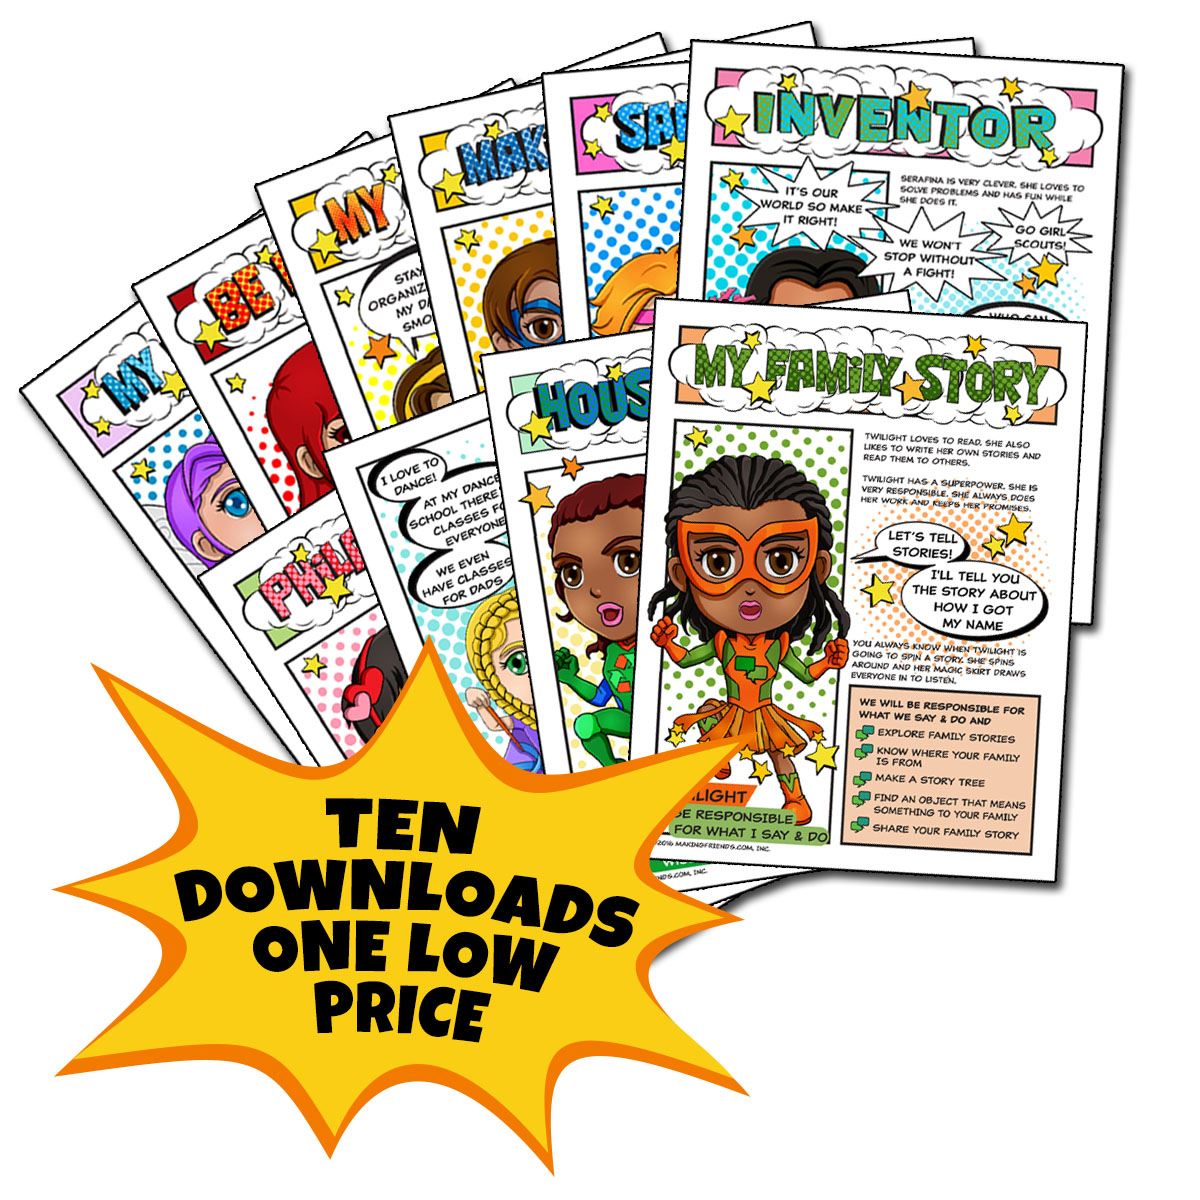 10 Beginner Superhero Downloads. The Superhero program was developed by MakingFriends®.com to be fun for girls and save time for leaders. Ten five-page comic downloads to complete Brownie badges and Daisy petals. Many troops have cancelled meetings due to school closure. Keep your girls involved in the program with downloads for earning badges. via @gsleader411